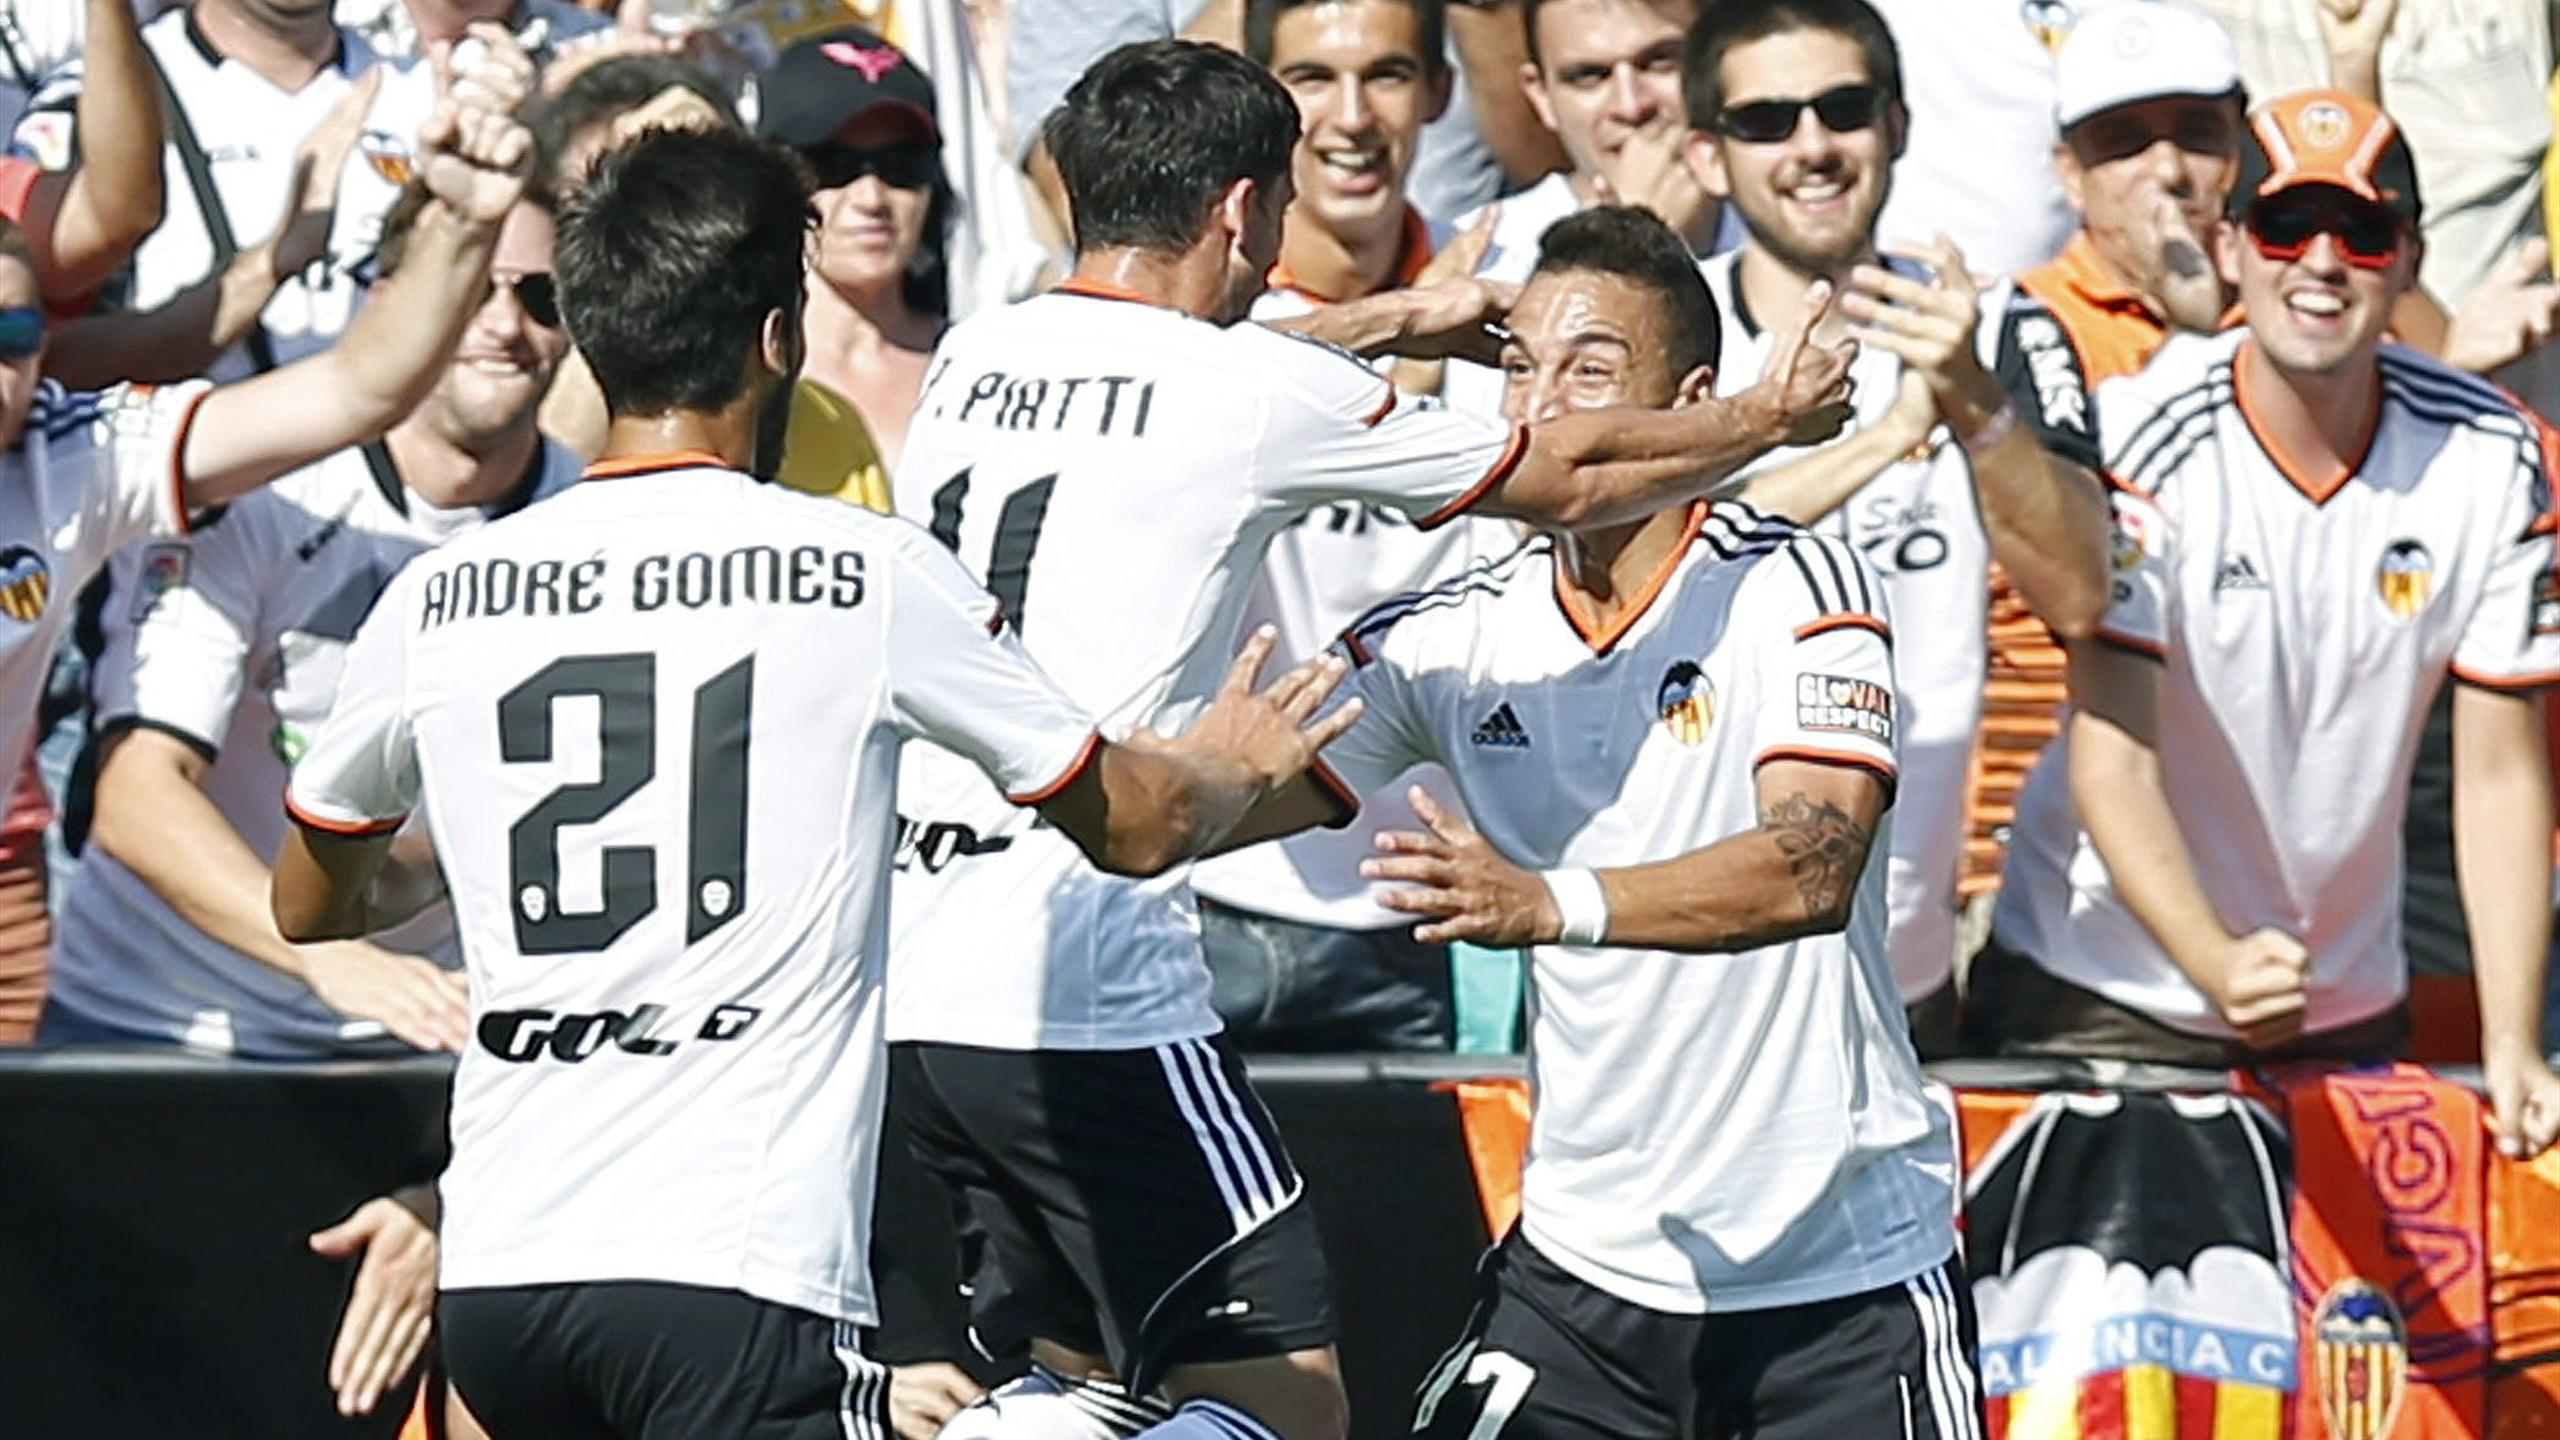 Video: Valencia vs Espanyol